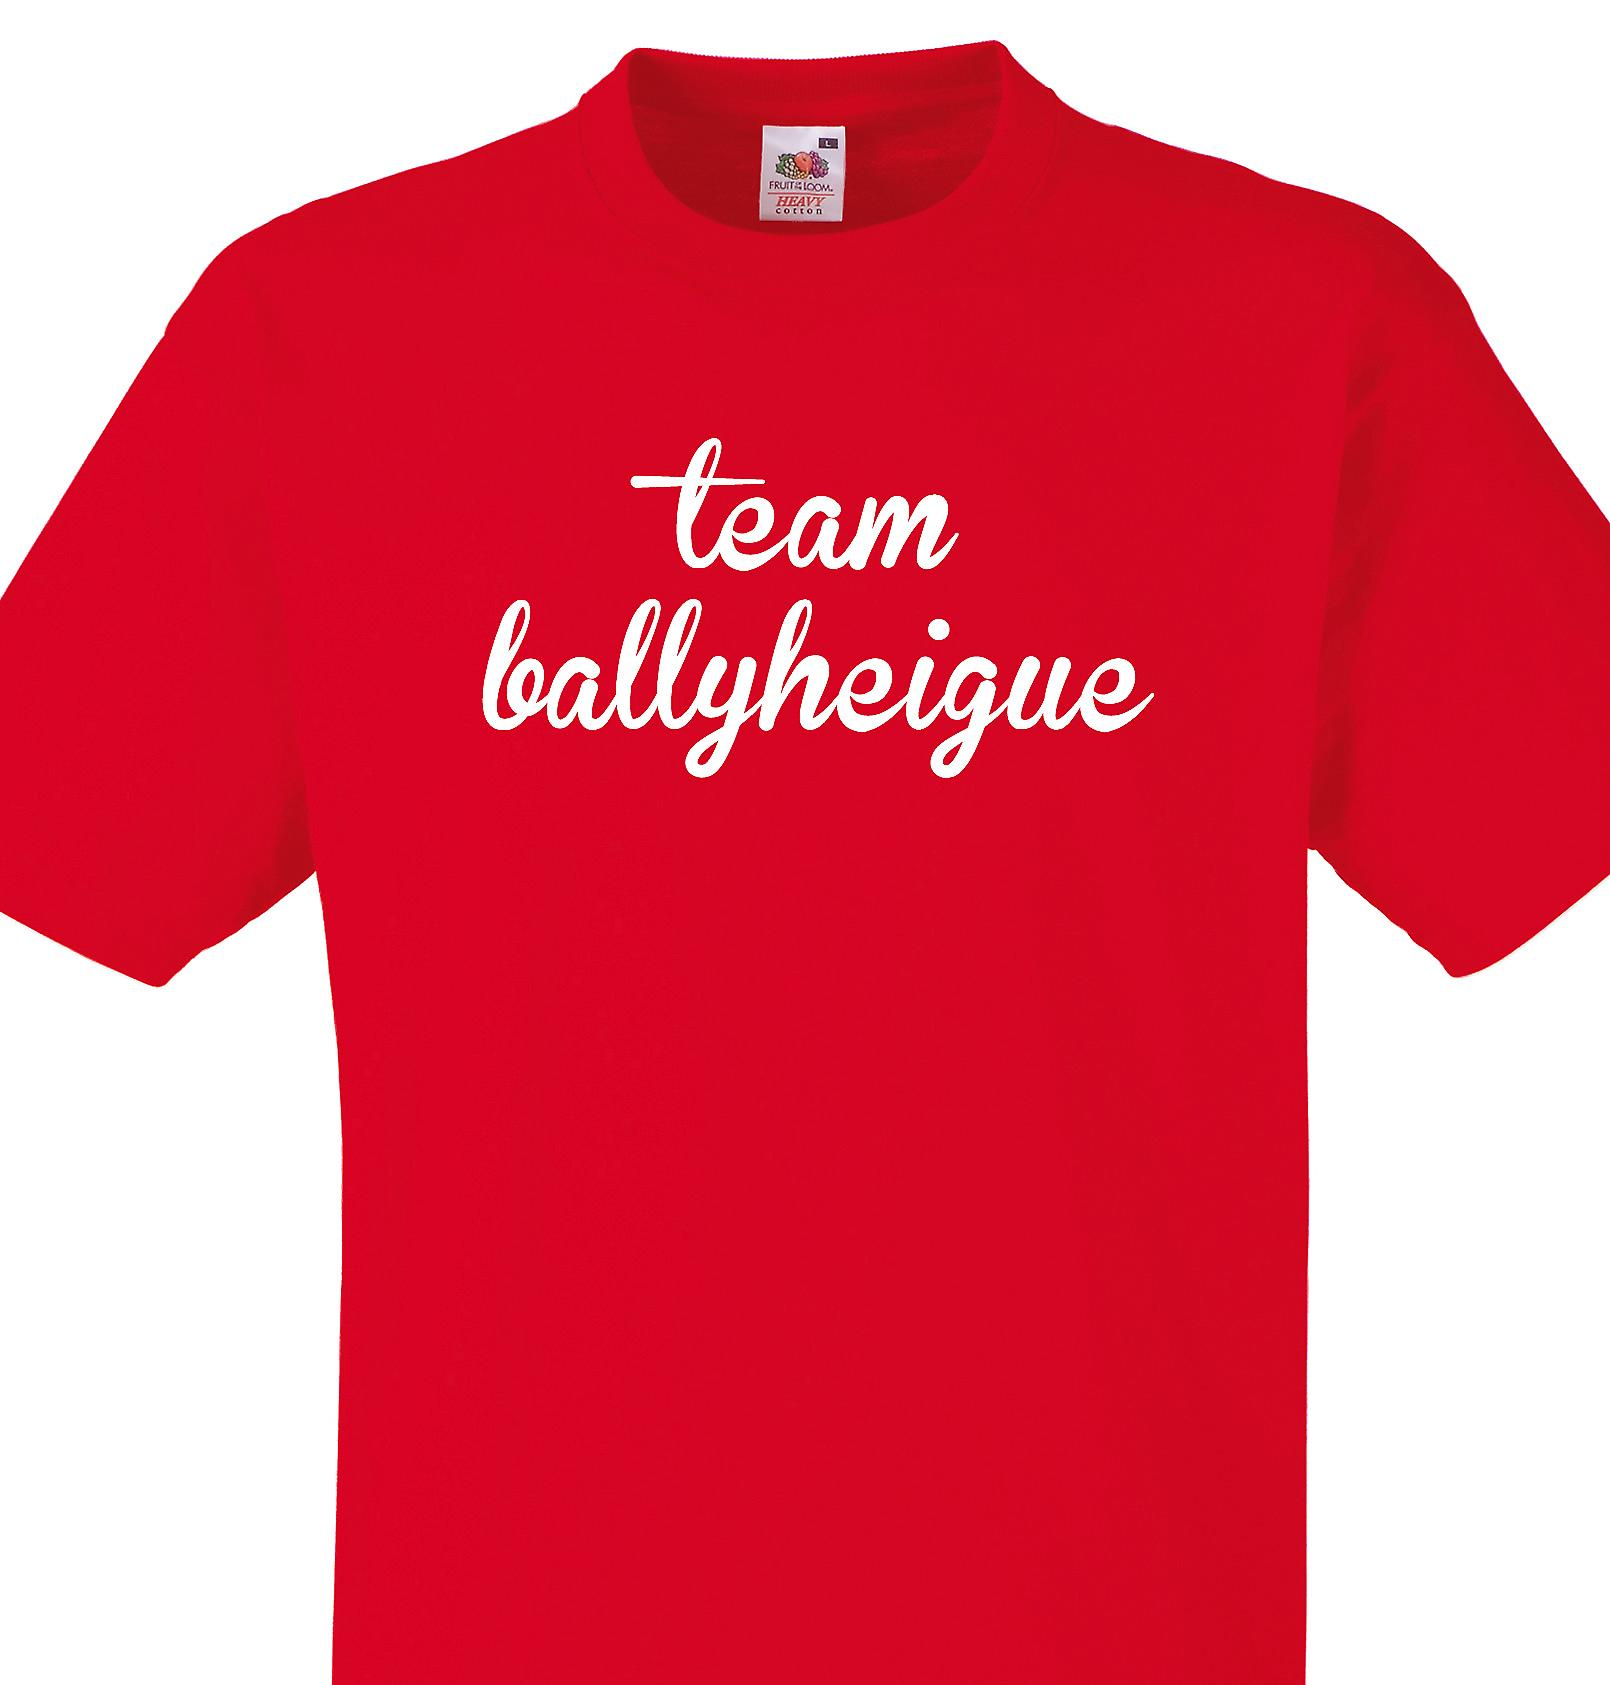 Team Ballyheigue Red T shirt